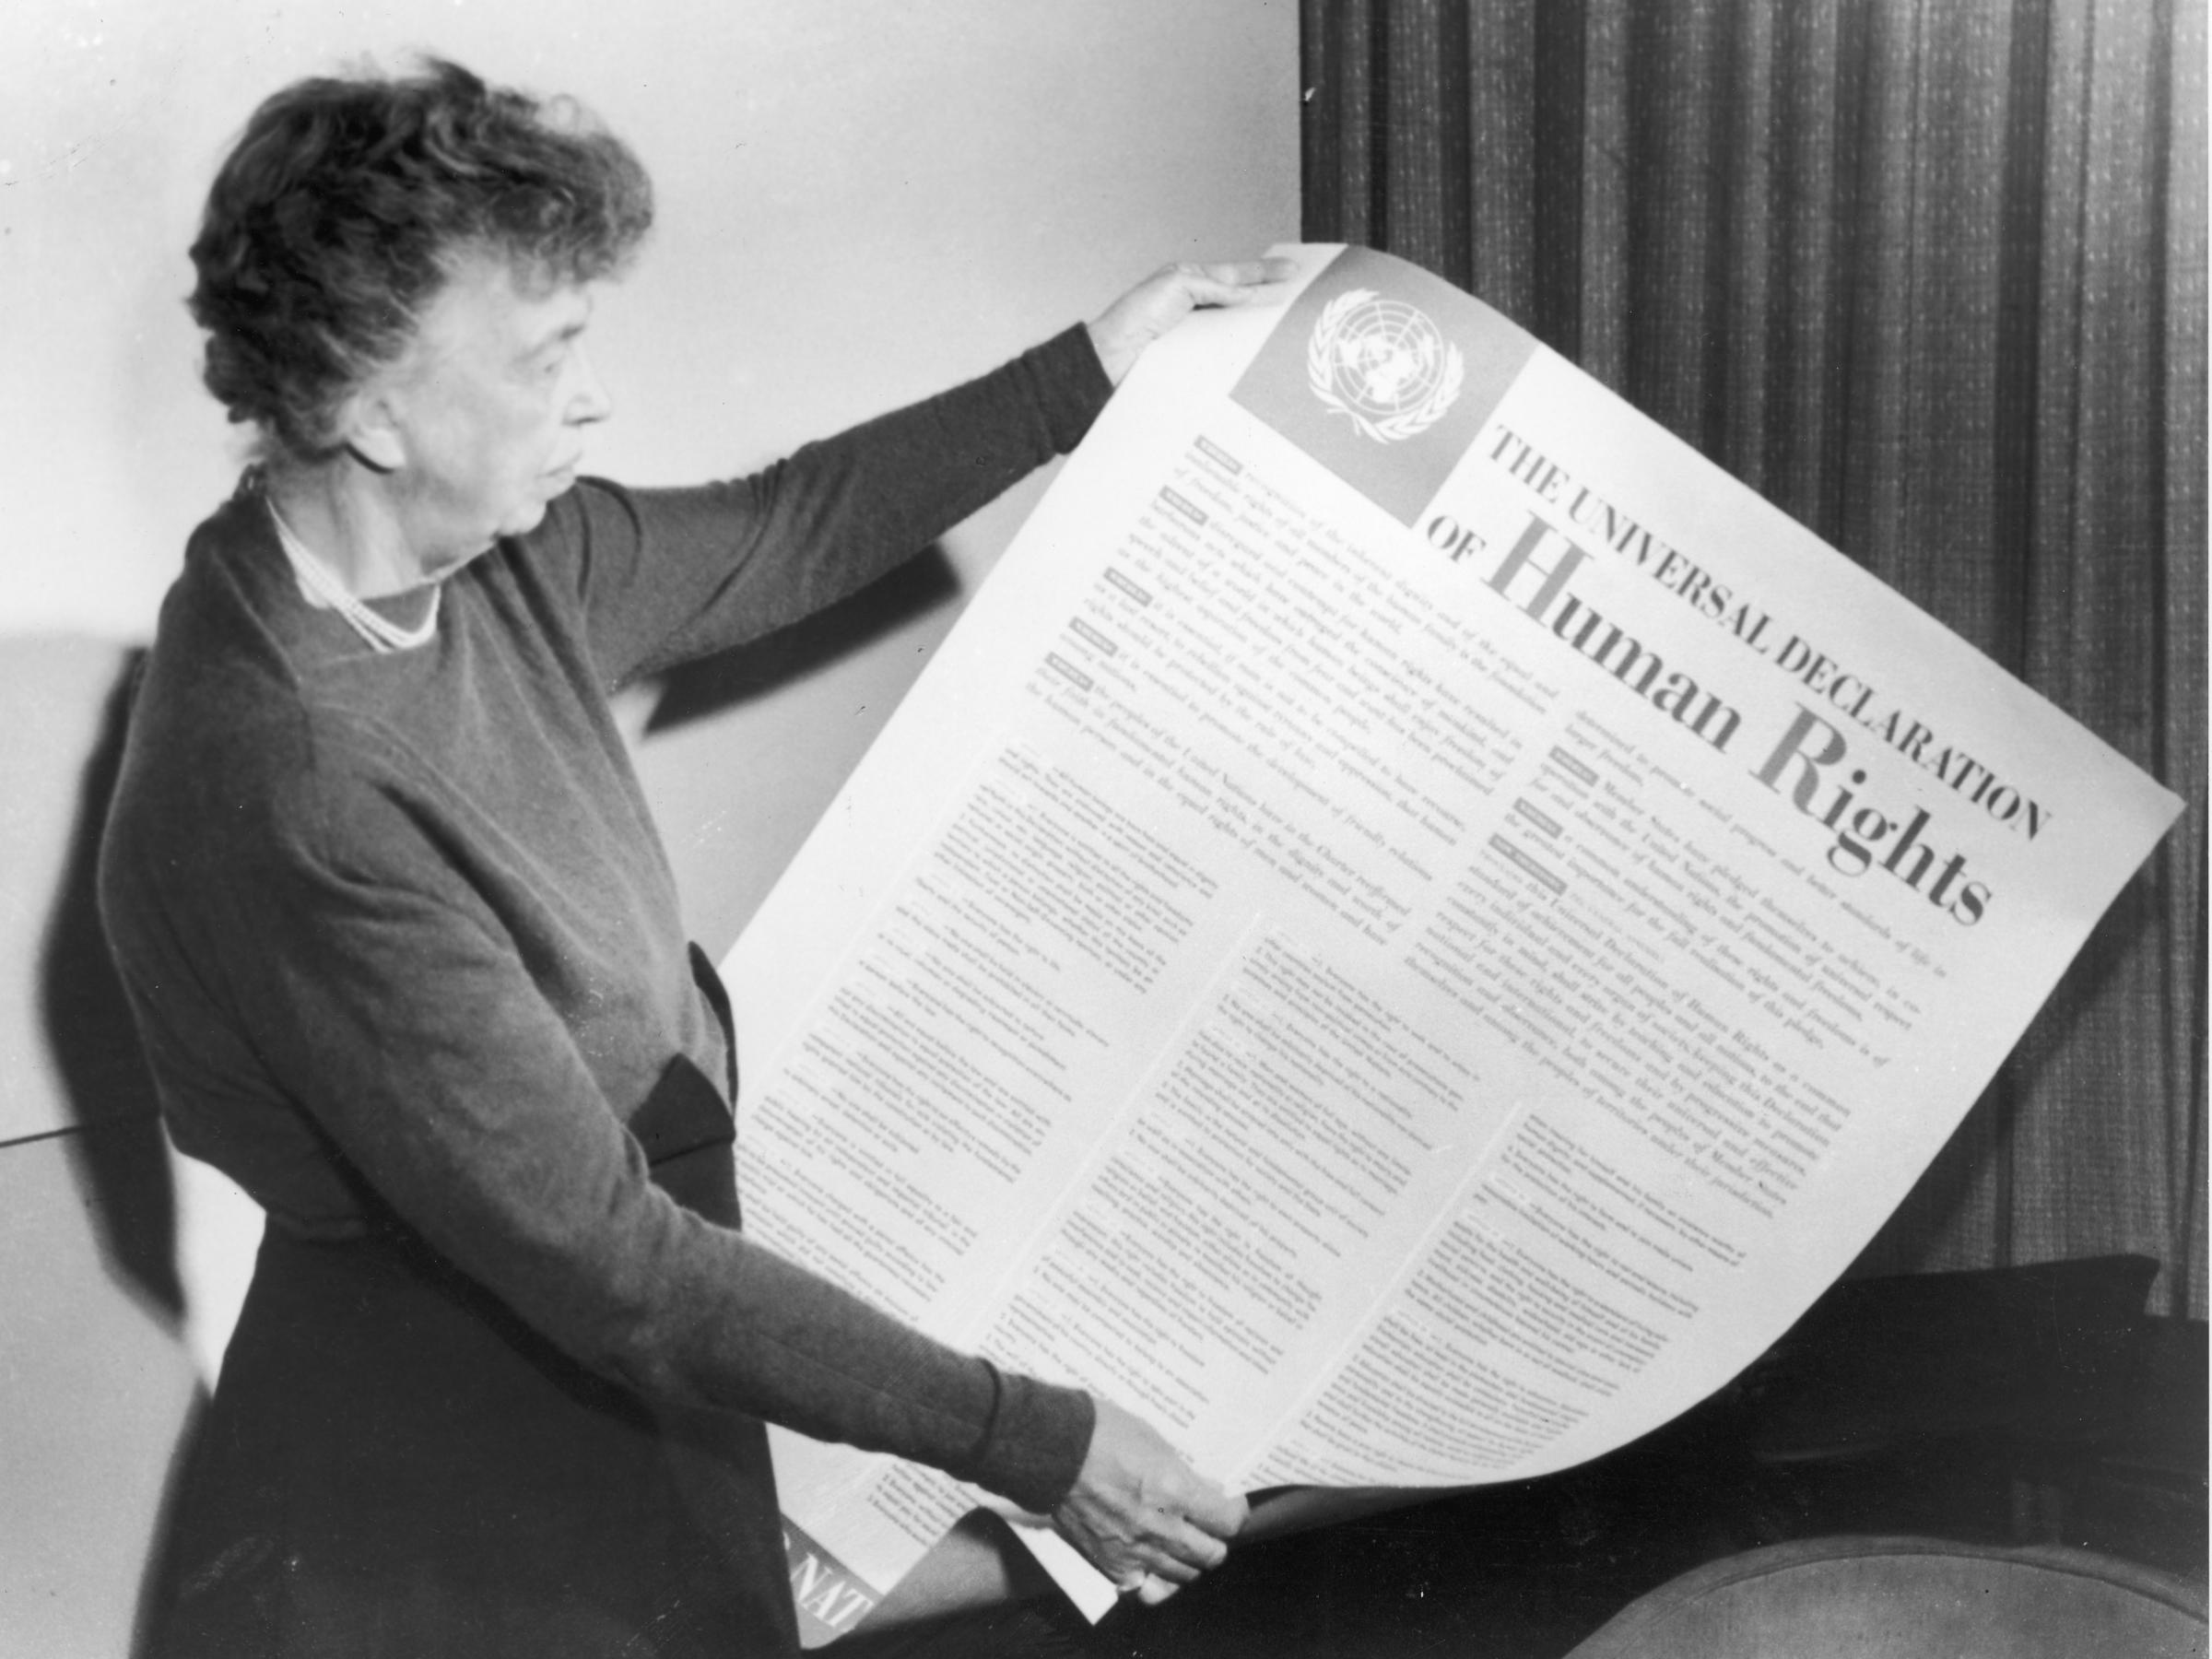 boundlessly idealistic, universal declaration of human rights is International Human Rights Law eleanor roosevelt holds up a copy of the universal declaration of human rights, adopted by the united nations in december 1948